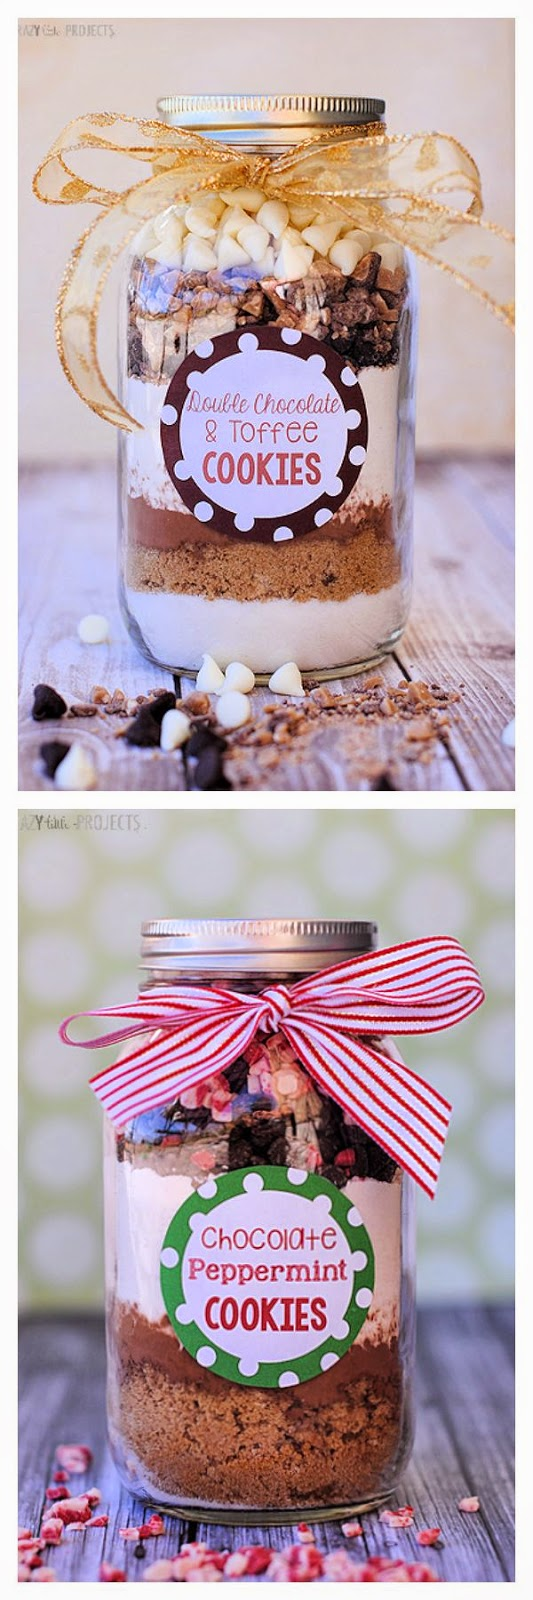 Best Diy Tips On Gardening Home Organization And Crafts 8 Clever Mason Jar Gifts Ideas You Ll Want To Keep For Yourself